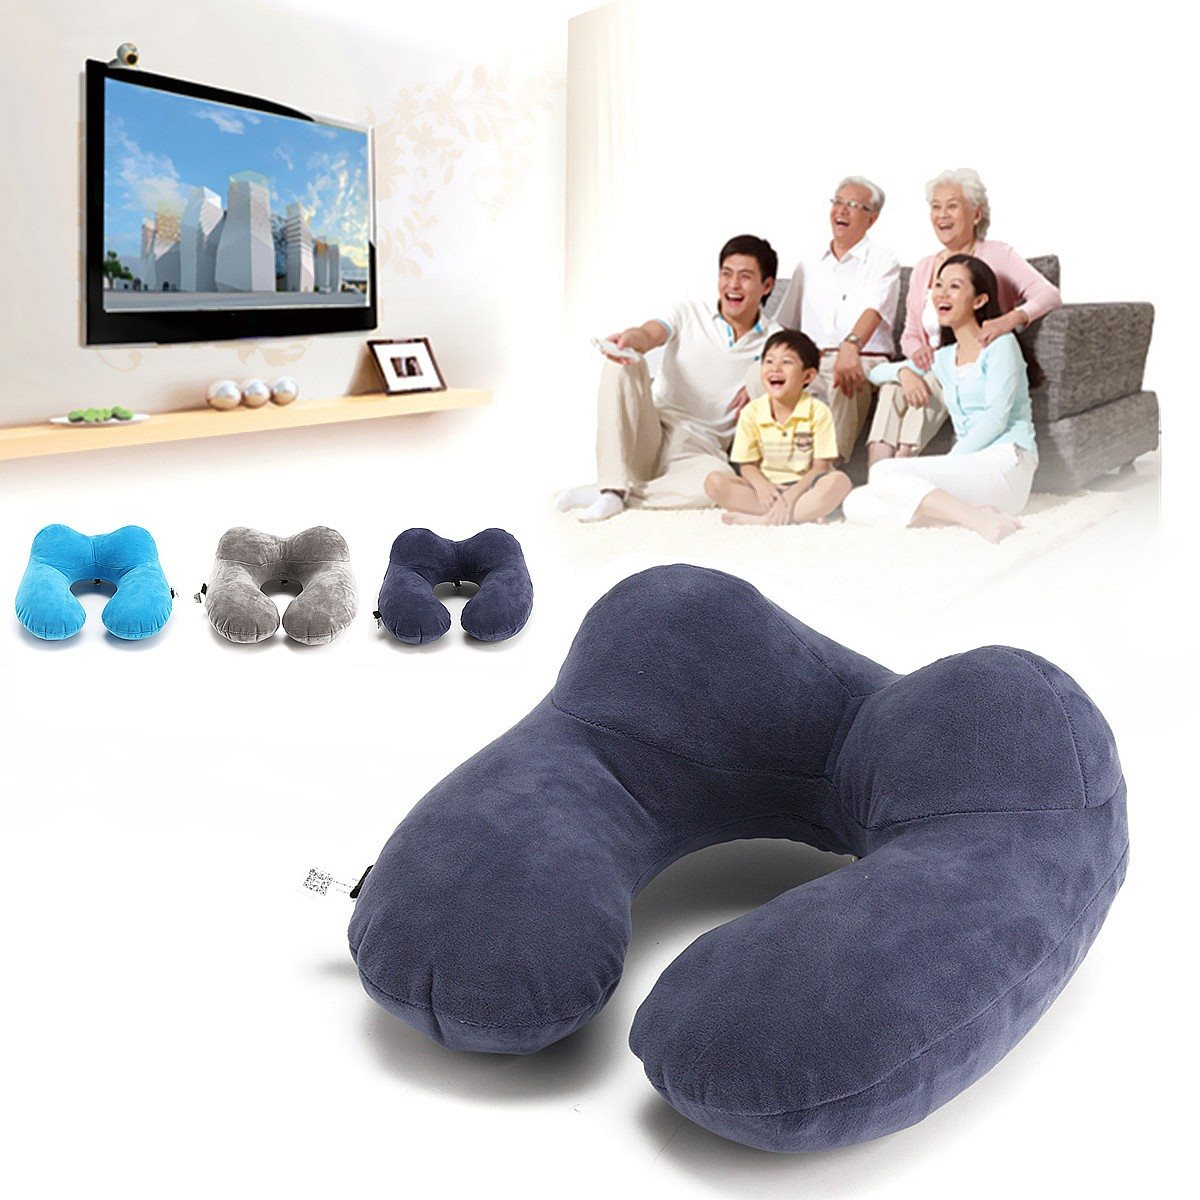 Folding Neck Air U Shape Neck Travel Pillow Cushion Inflatable Portable Comfortable Business Trip Outdoor for Sleep Home Textile(China (Mainland))